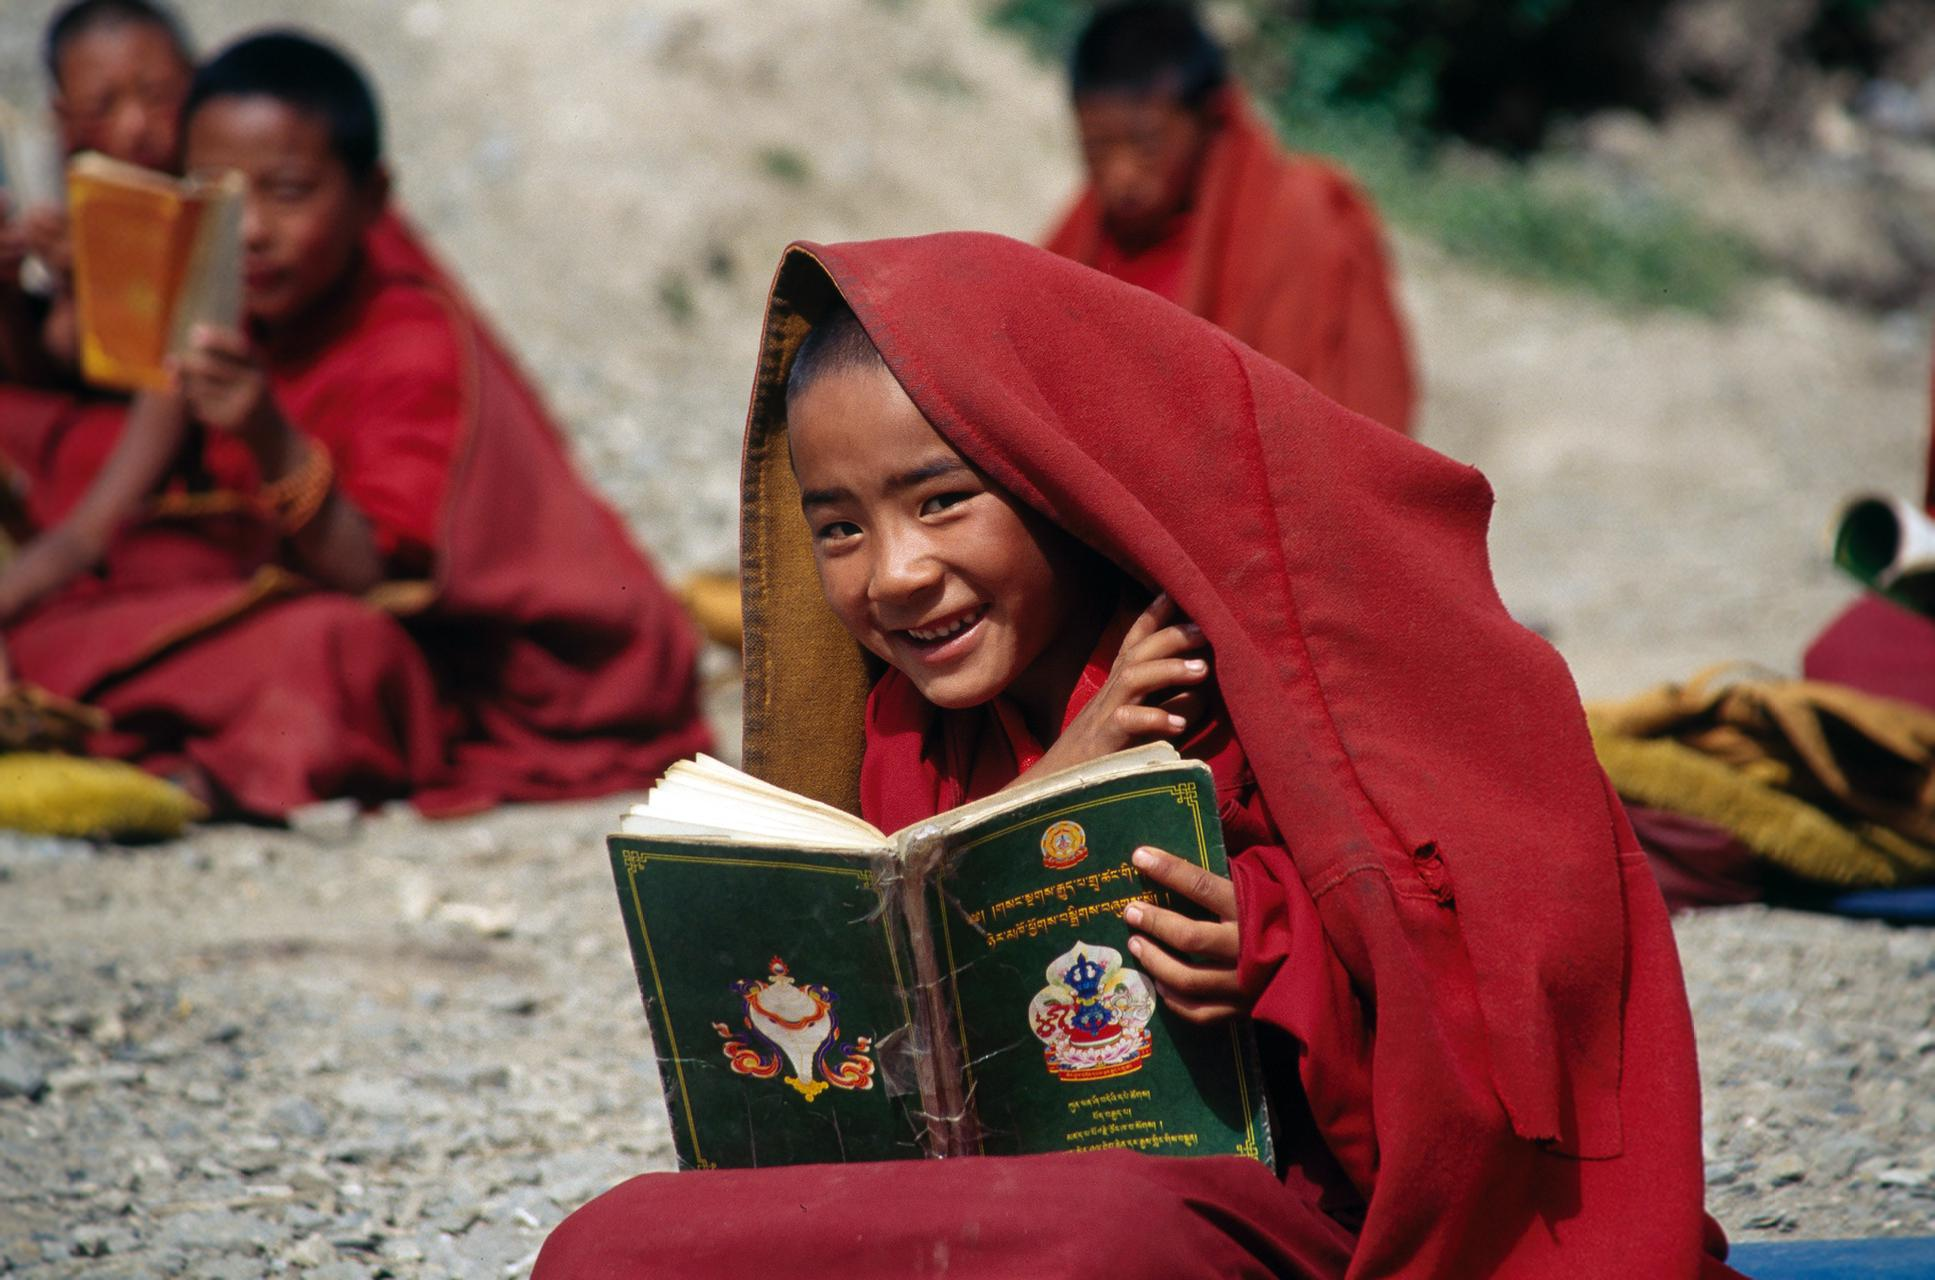 Photo: a boy Tibetan monk, reading a book with Tibetan letters